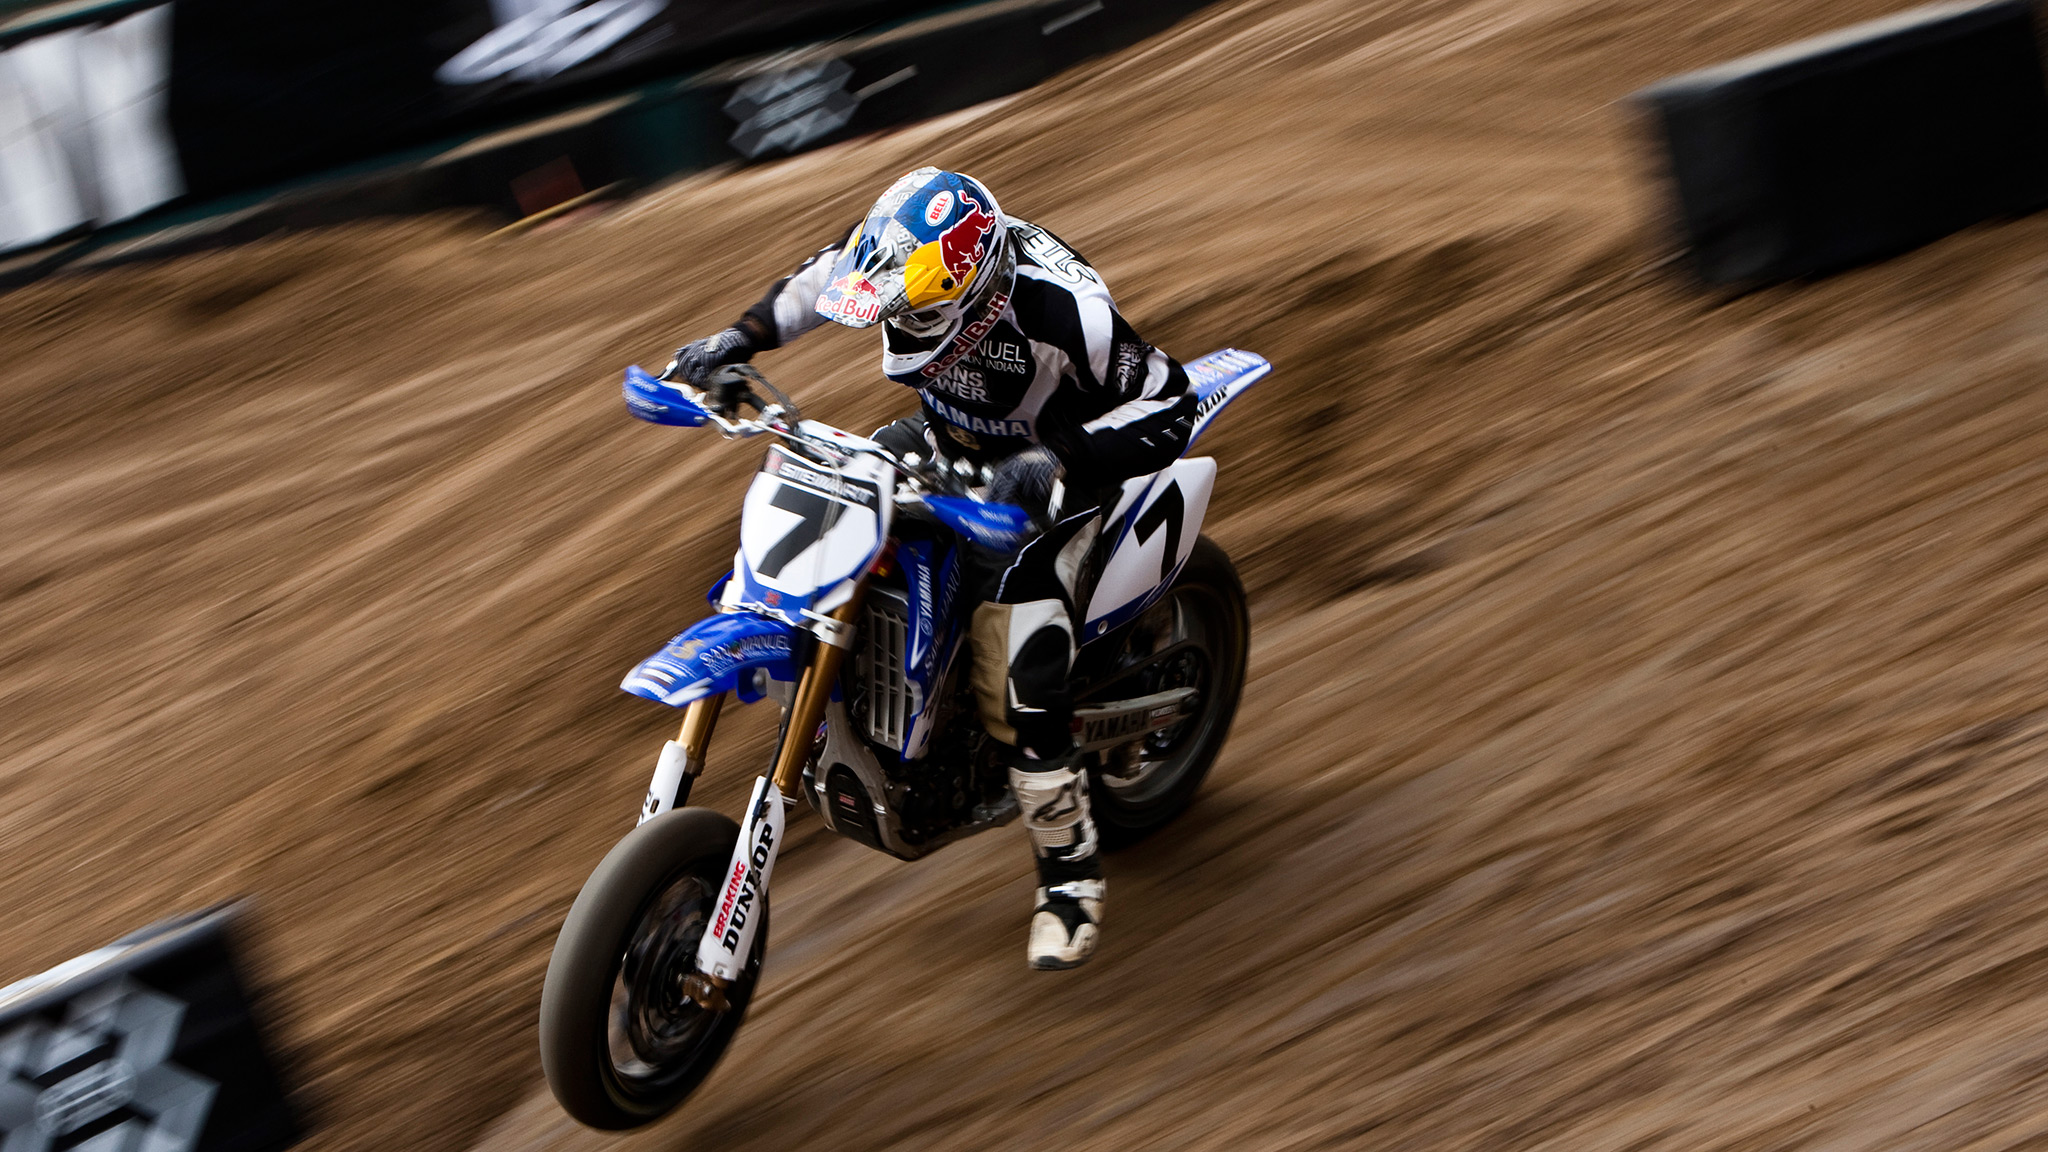 James Stewart vs. Chad Reed